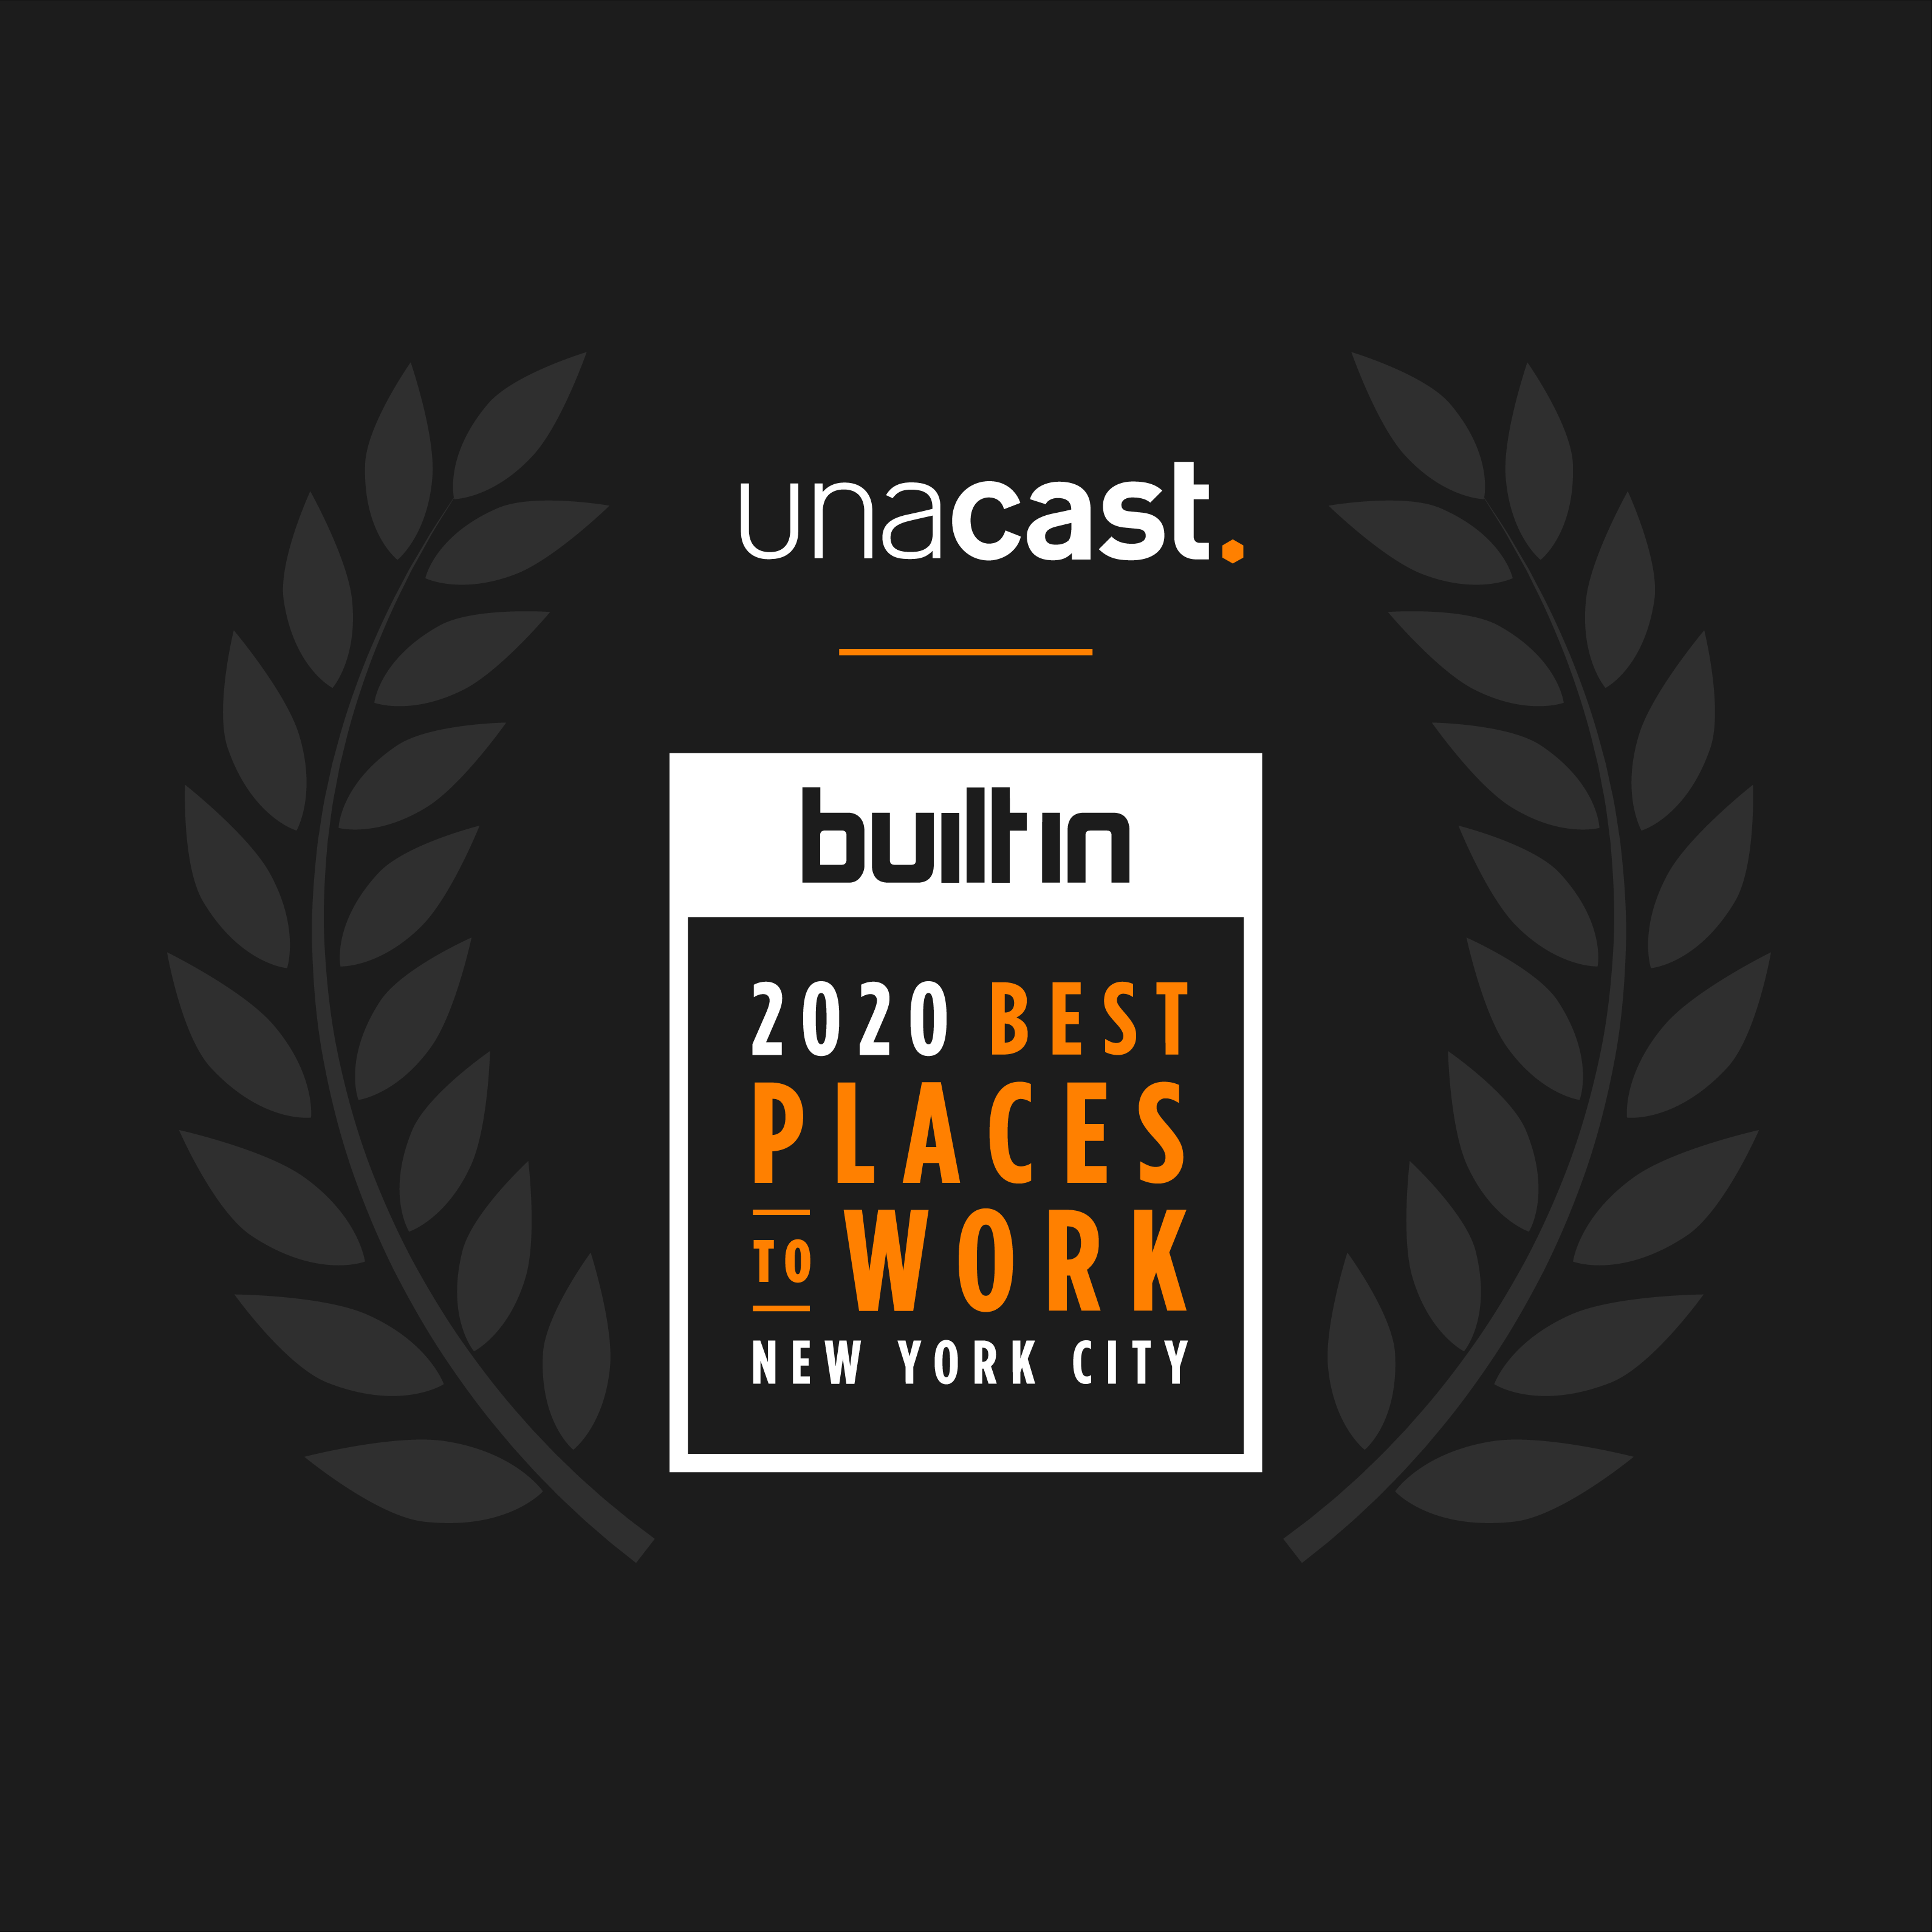 """Unacast Named One Of The """"Top 10 Small Companies To Work For"""" In NYC"""